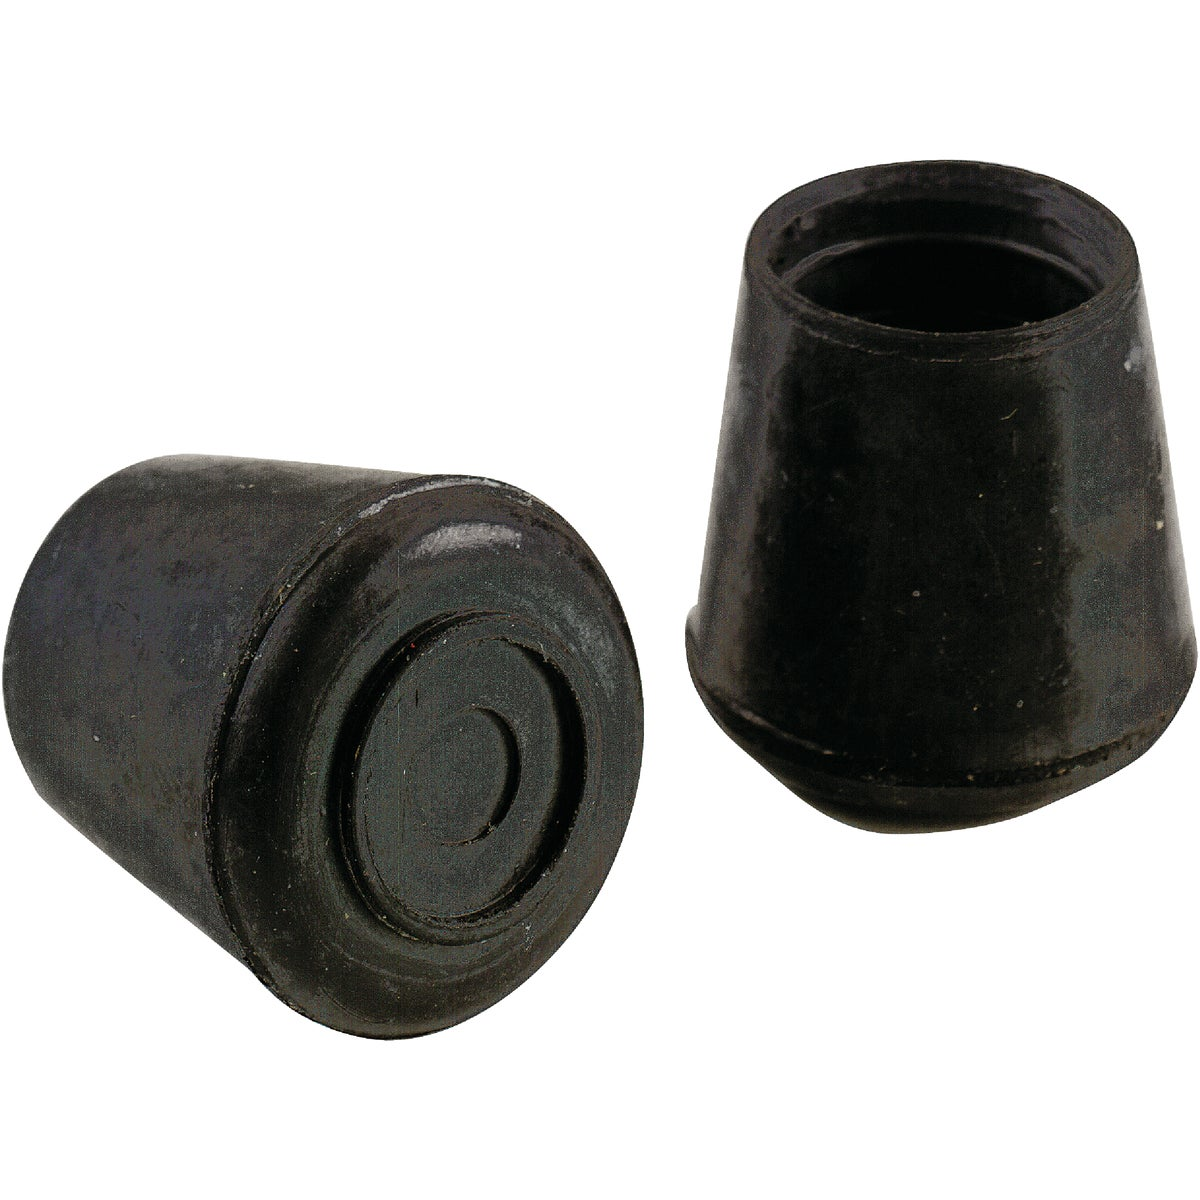 "5/8"" RUBBER LEG TIP - 209686 by Shepherd Hardware"